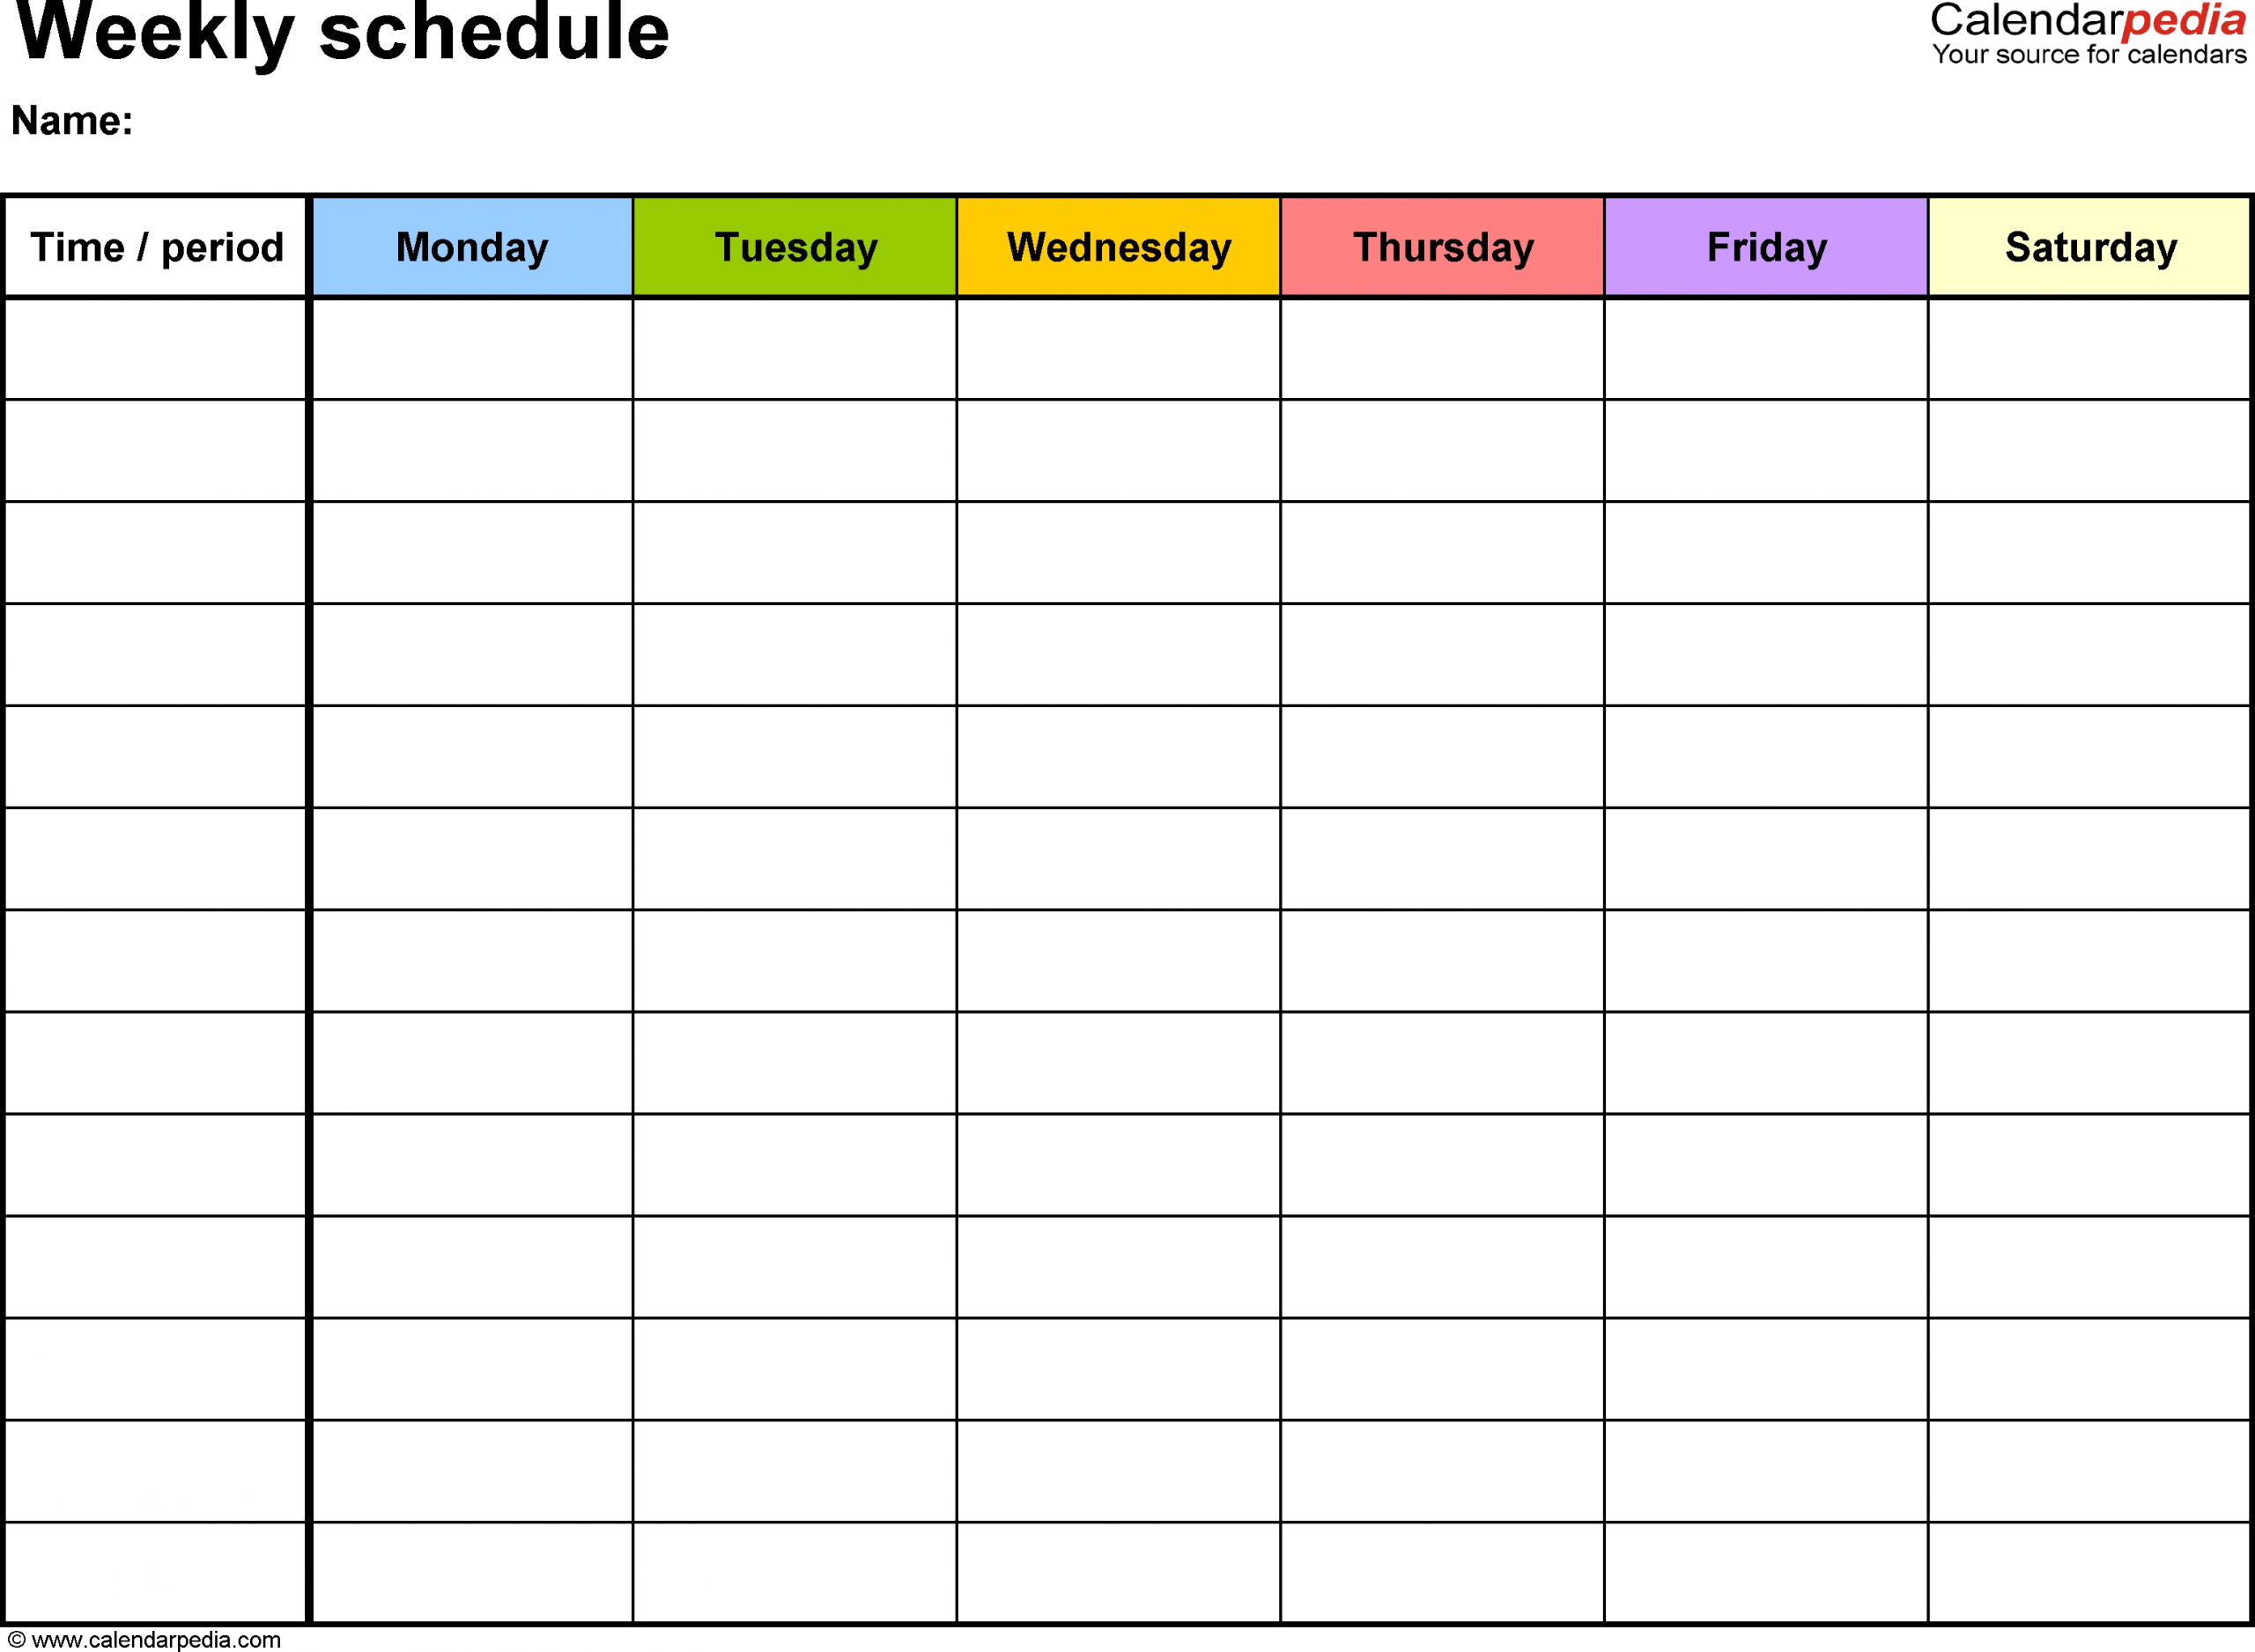 Free Printable Daily Calendar With Time Slots – Template Calendar With Time Slot